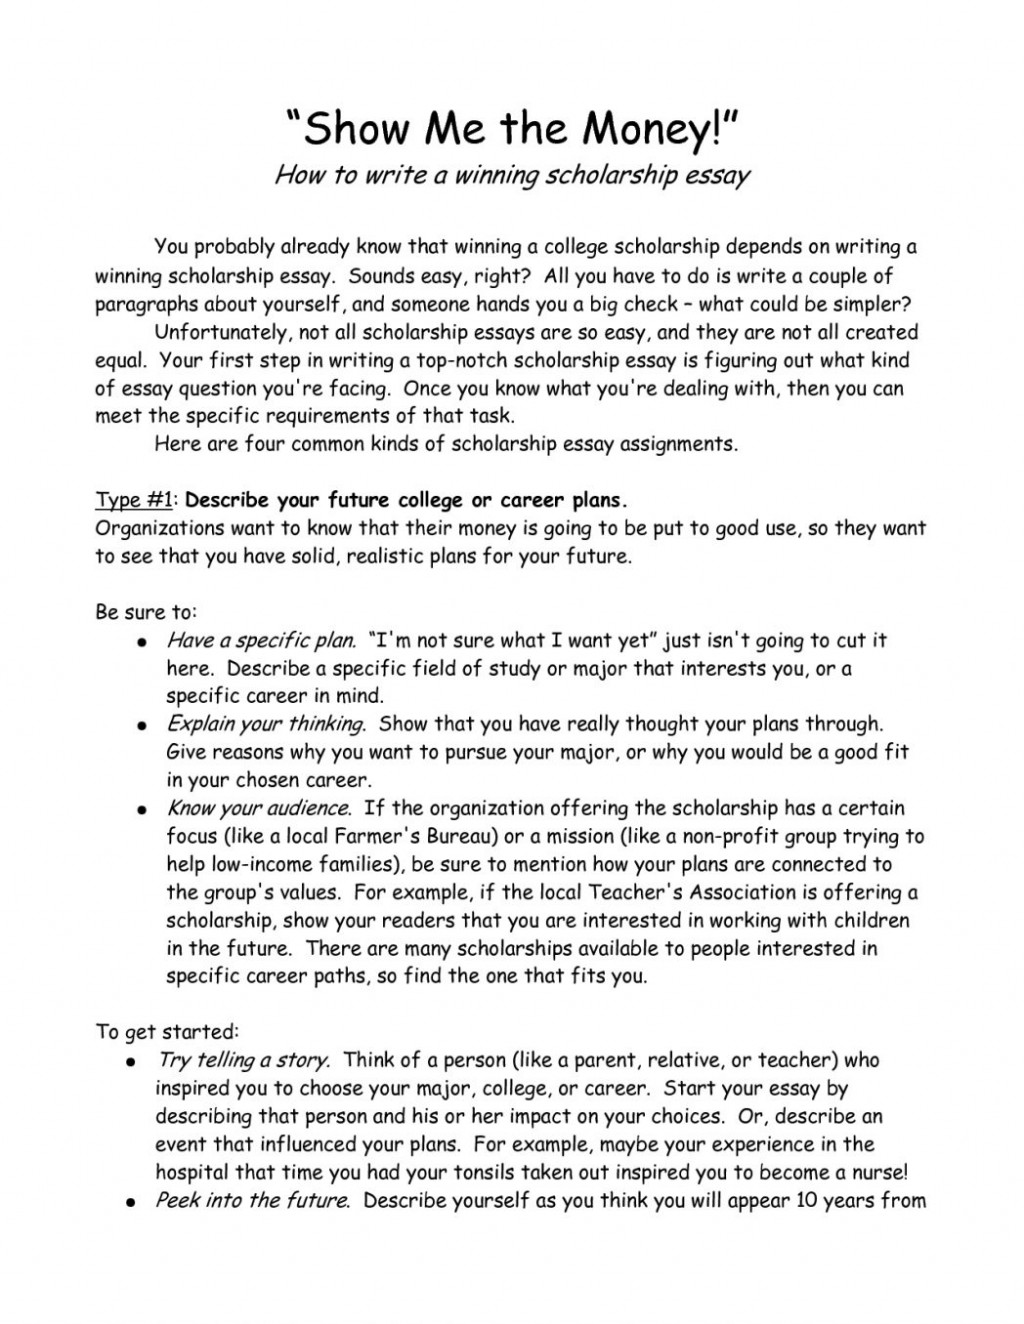 004 Essay Example Scholarships For College Students High School Student Resume Template No Experience Luxury Assignment Scholarship Examples Printables Corner Astounding 2019 2017 2018 Large